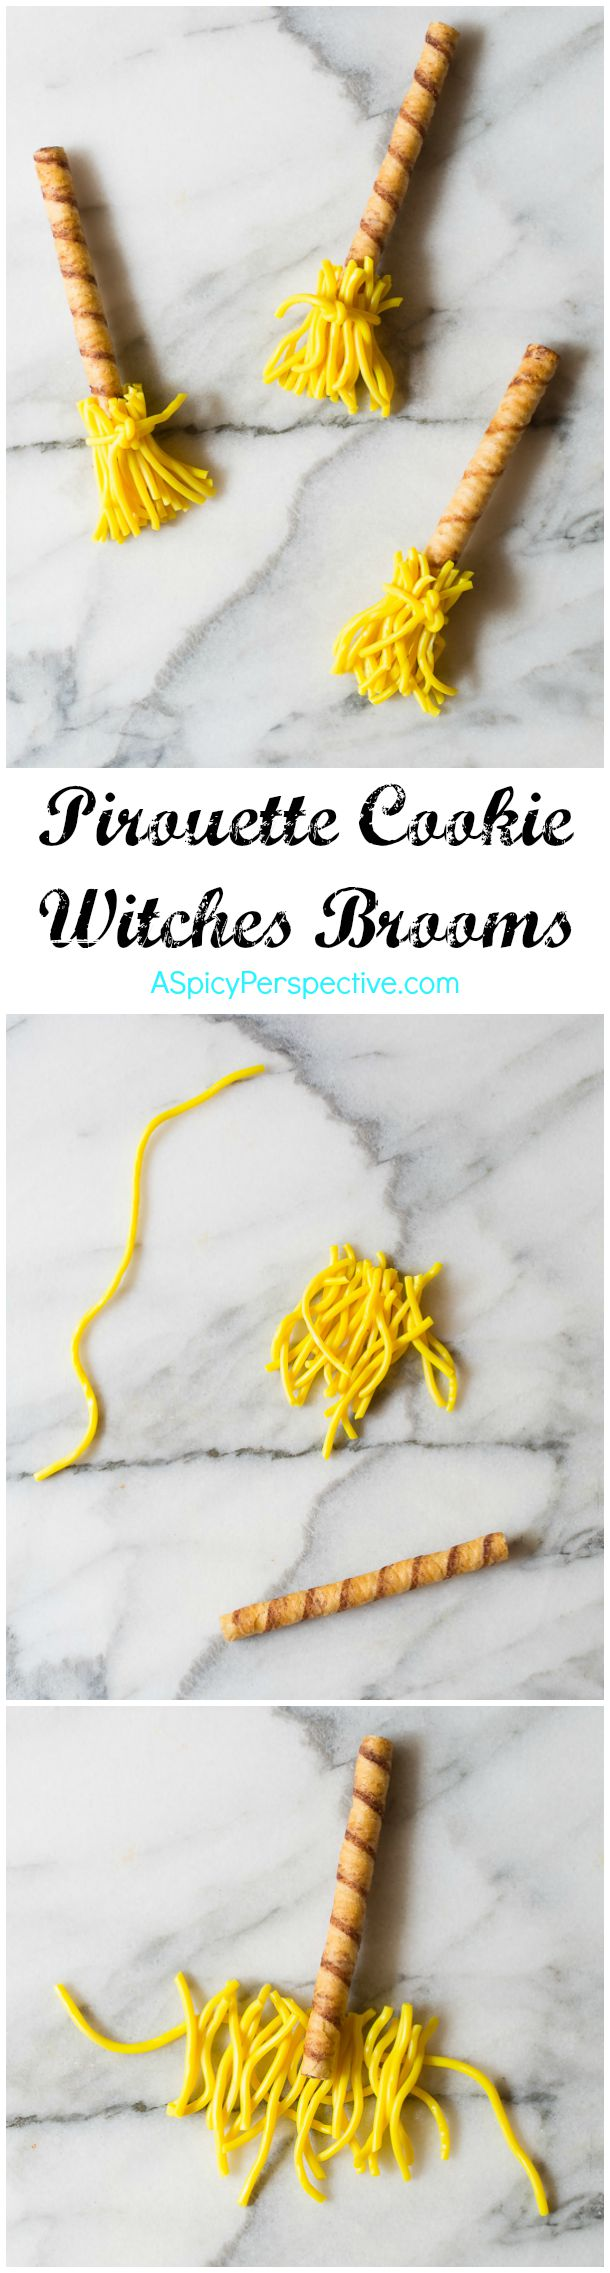 Learn How to Make Witches Broomsticks - 5 Easy Halloween Treats Made with Pirouette Cookies!